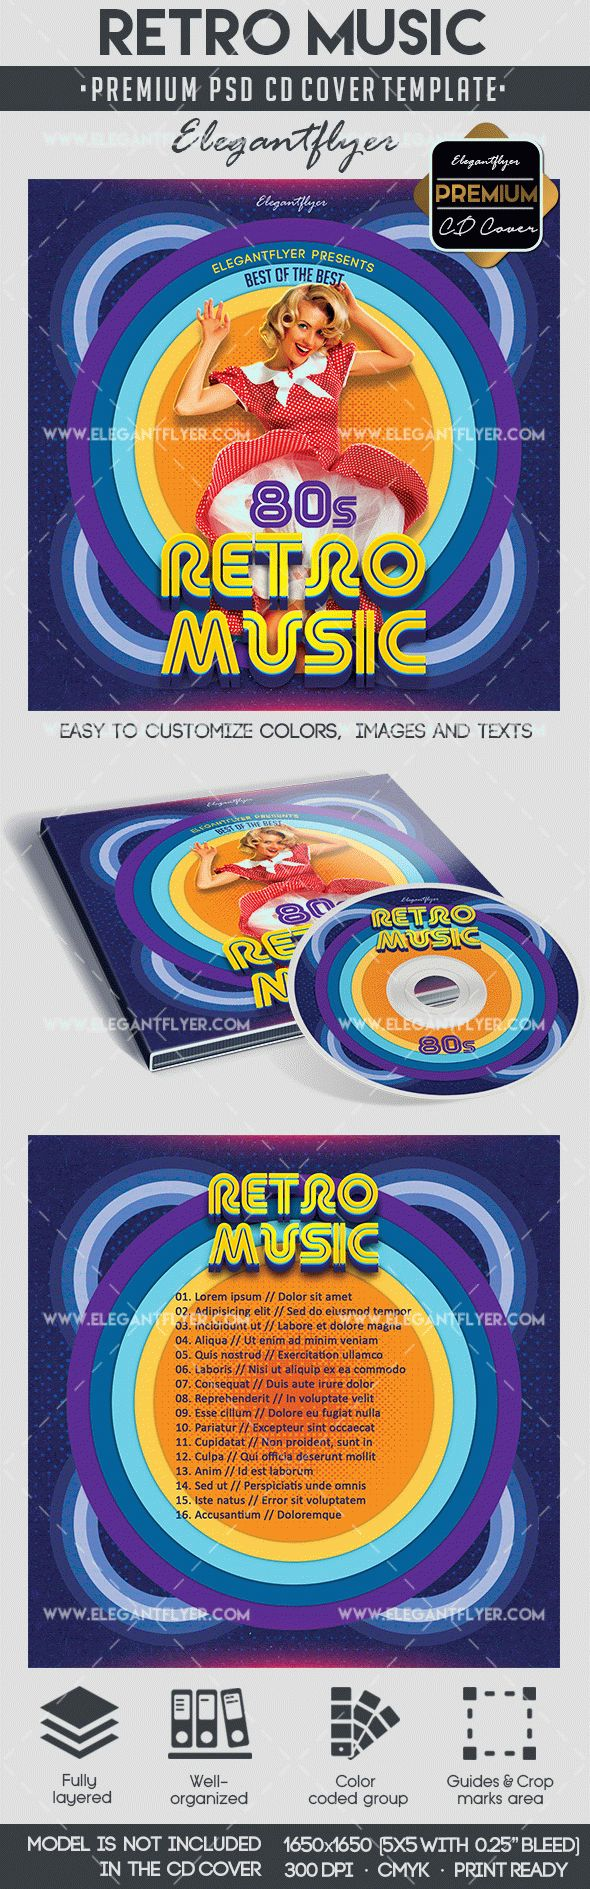 Retro Music – Premium CD&DVD cover PSD Template